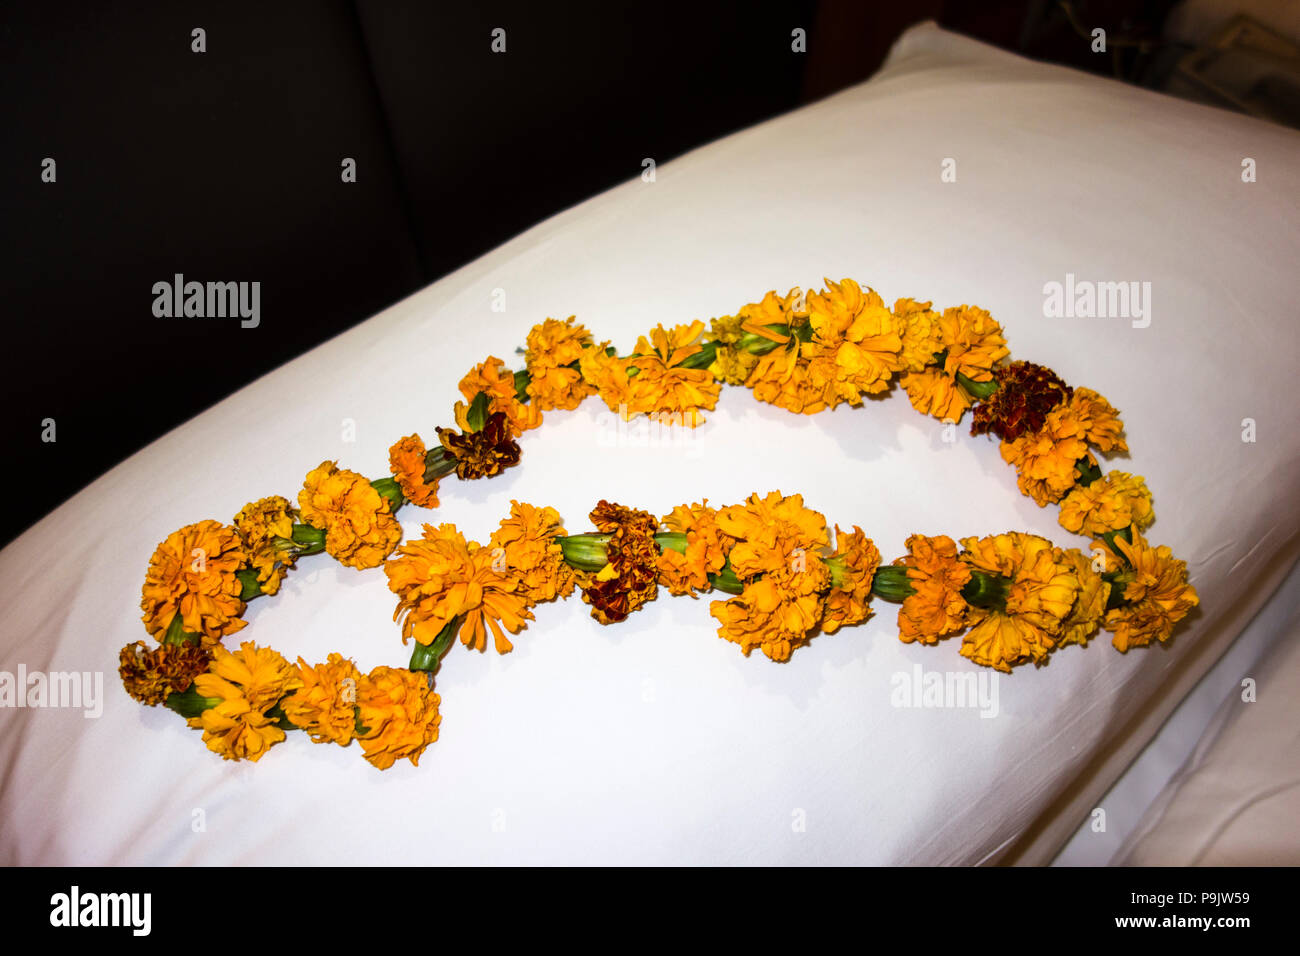 Indian flower garland to honor guests on a pillow at a hotel in New Delhi, Delhi, India - Stock Image